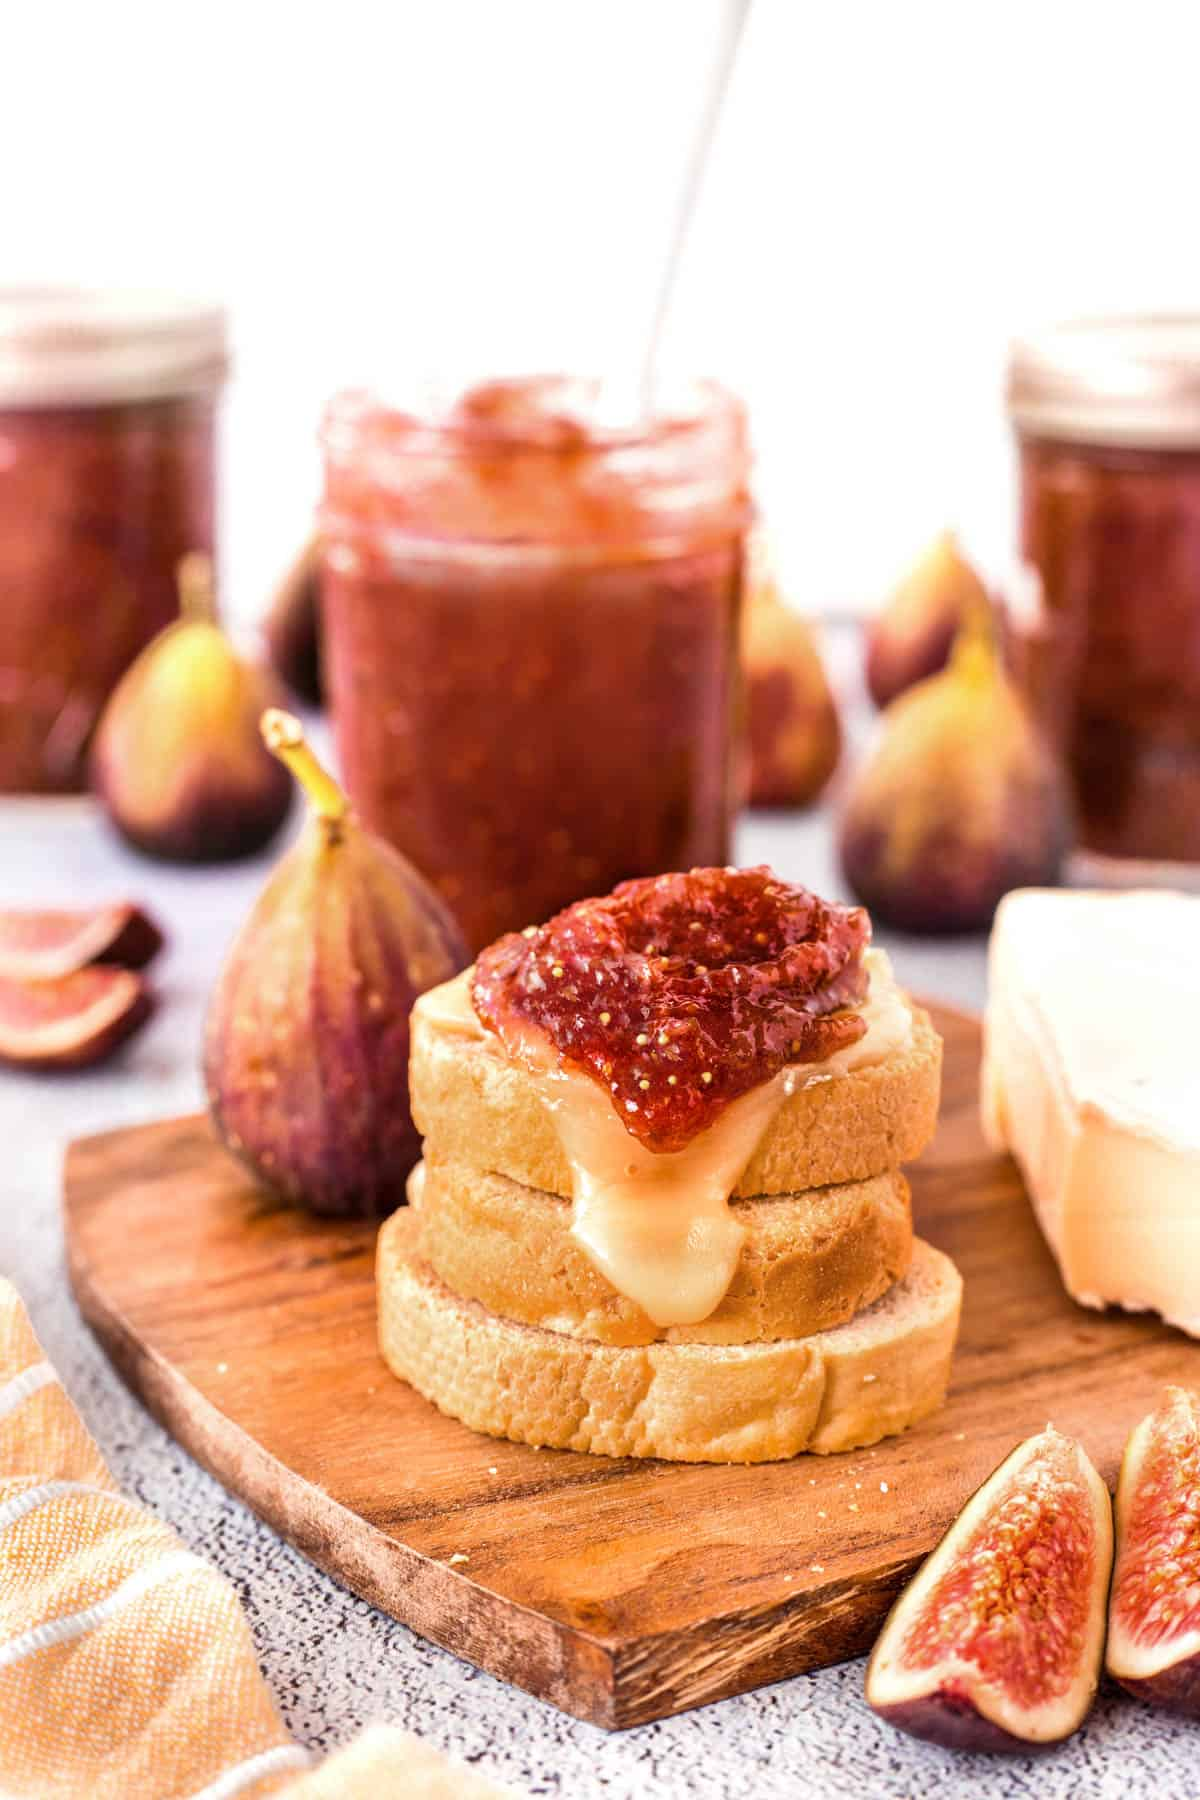 Homemade Fig Jam on a melted cheese crostini